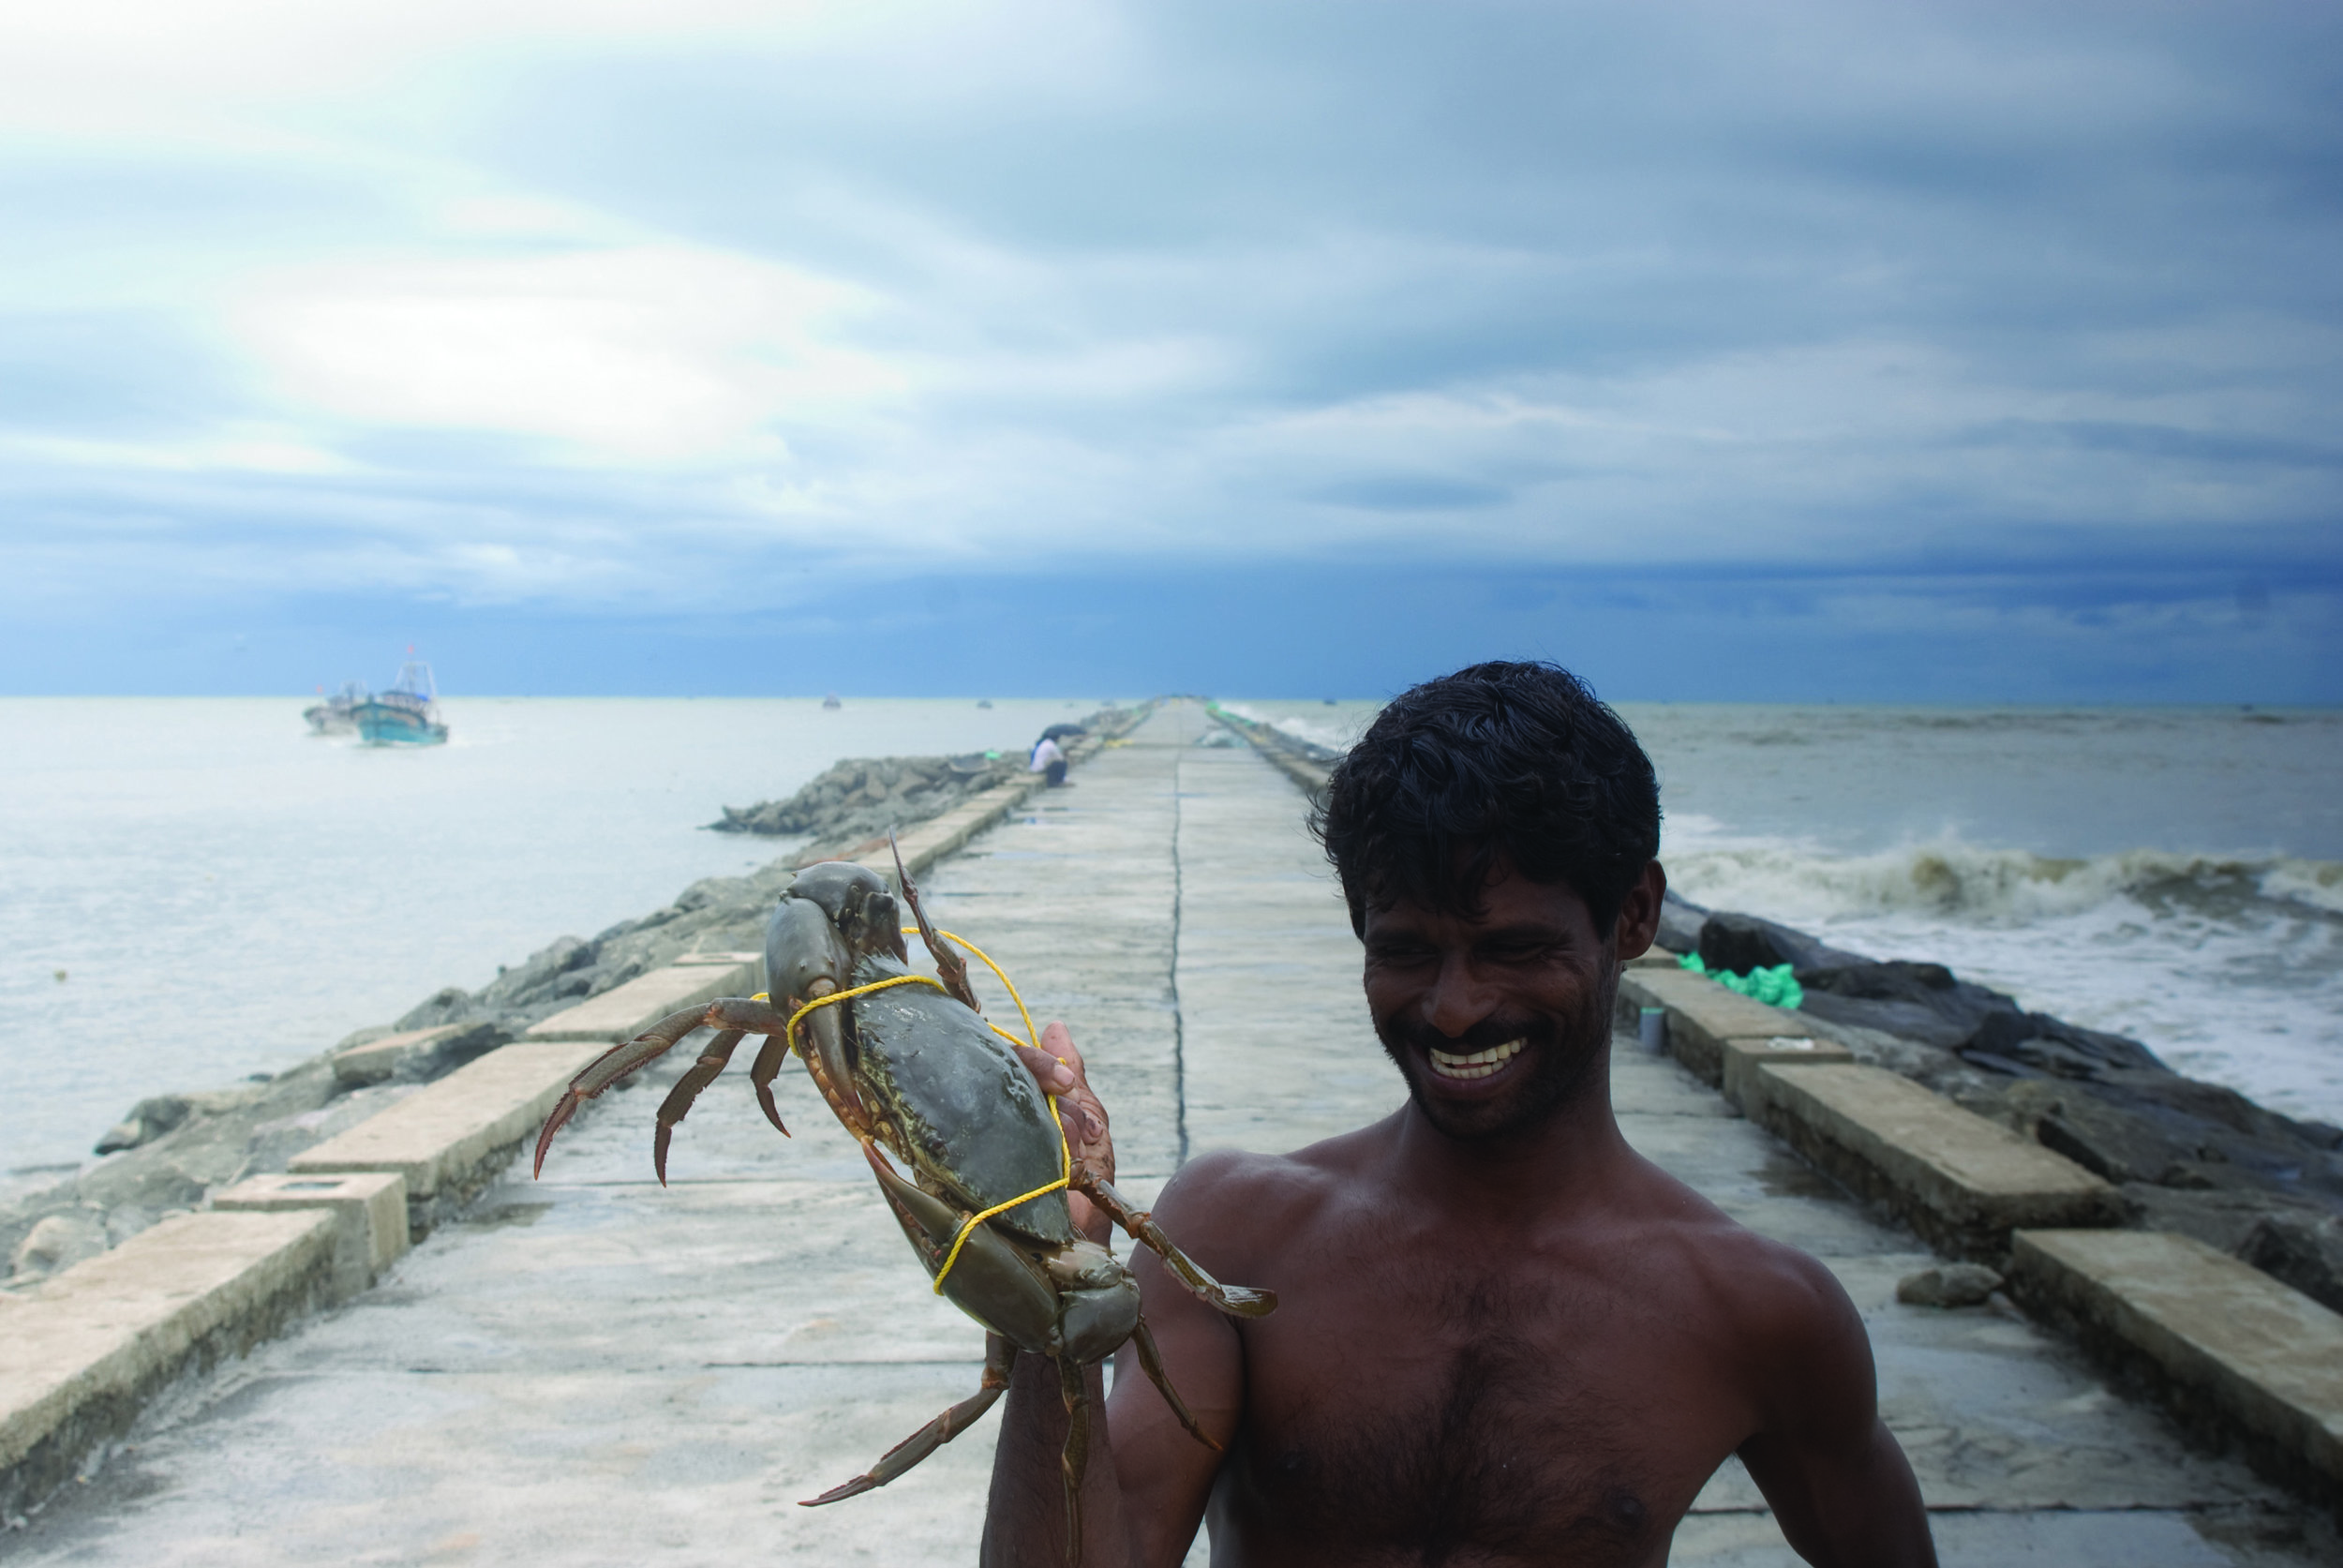 fisherman_with_his_catch_104.jpg